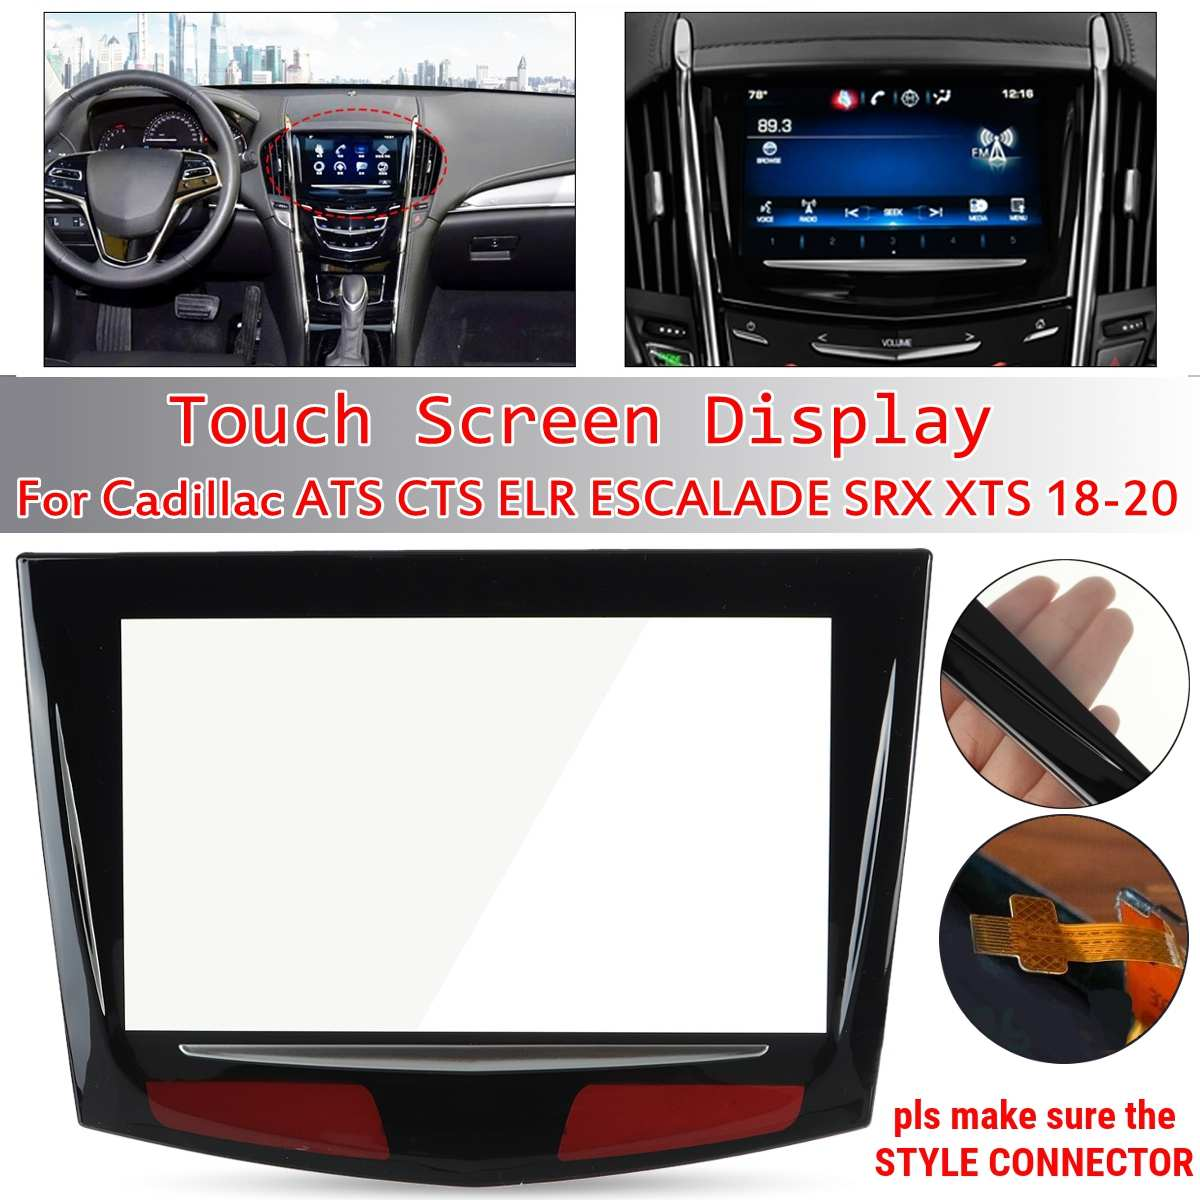 1PCS Touch Screen Display For Cadillac Escalade ATS CTS SRX XTS CUE 2018 2019 2020/2013 2014 2015 20